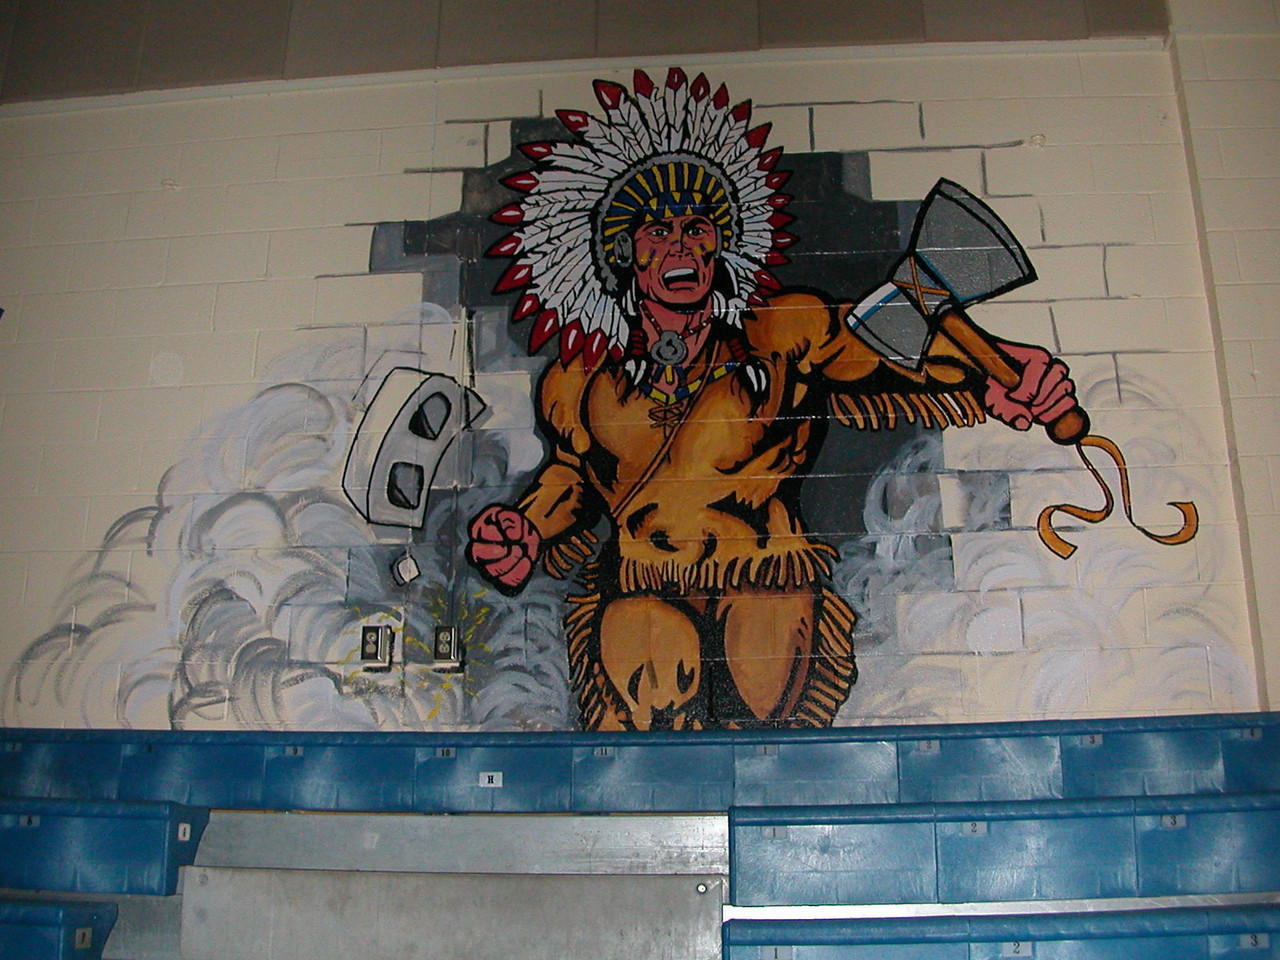 Raider logo in gym.  I know a few towns that would get upset over this.  Thank god we still have some common sense in Pittsburgh.